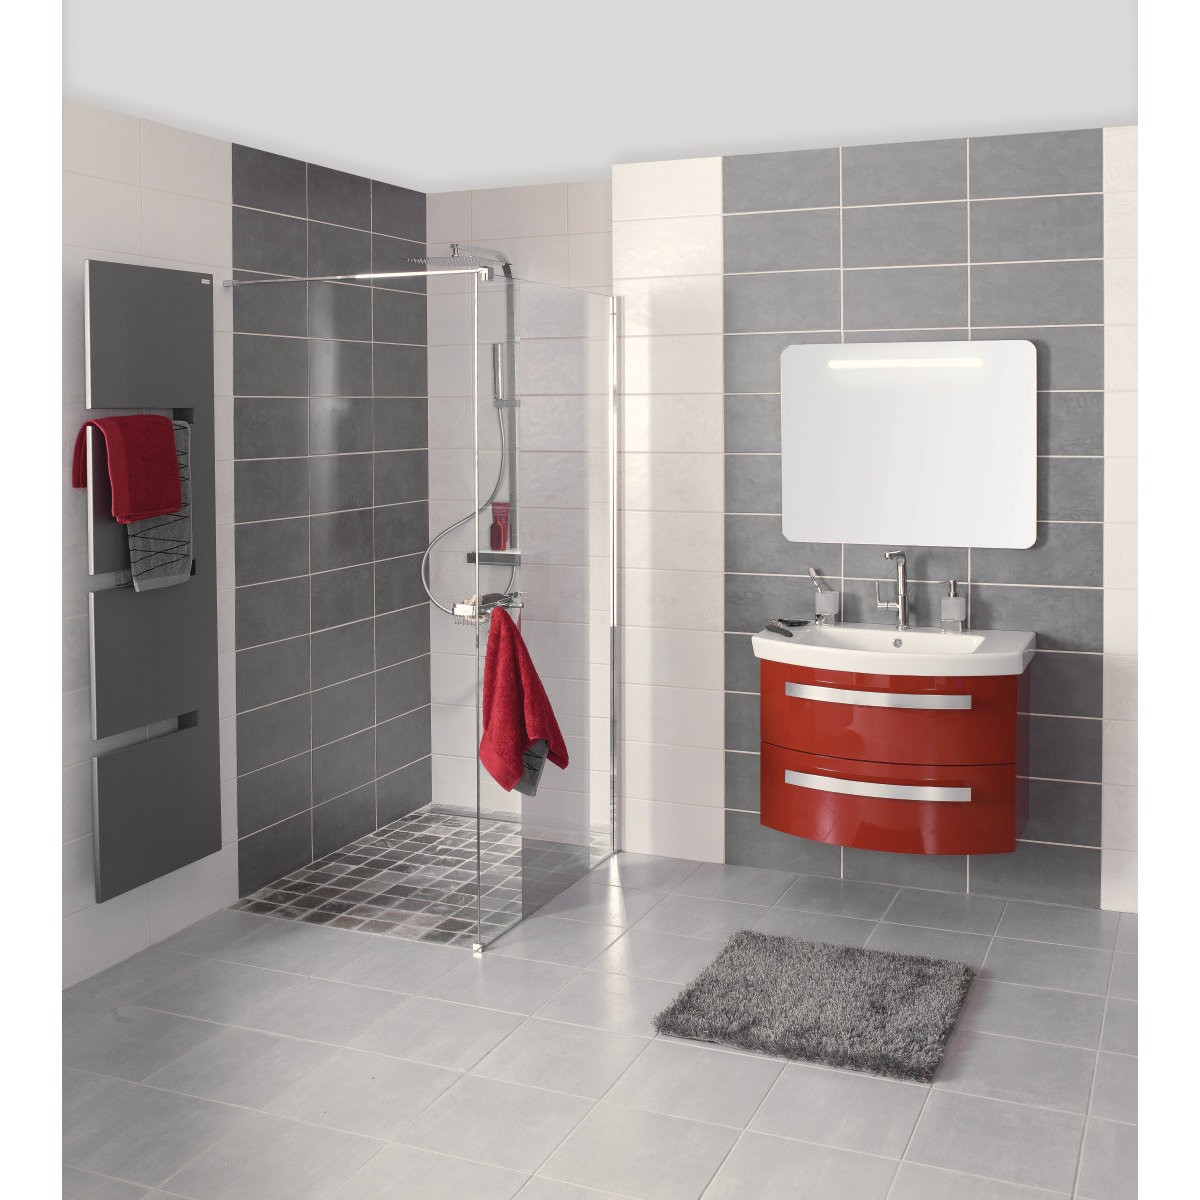 Carrelage salle de bain point p salle de bain id es de for Photo carrelage salle de bain